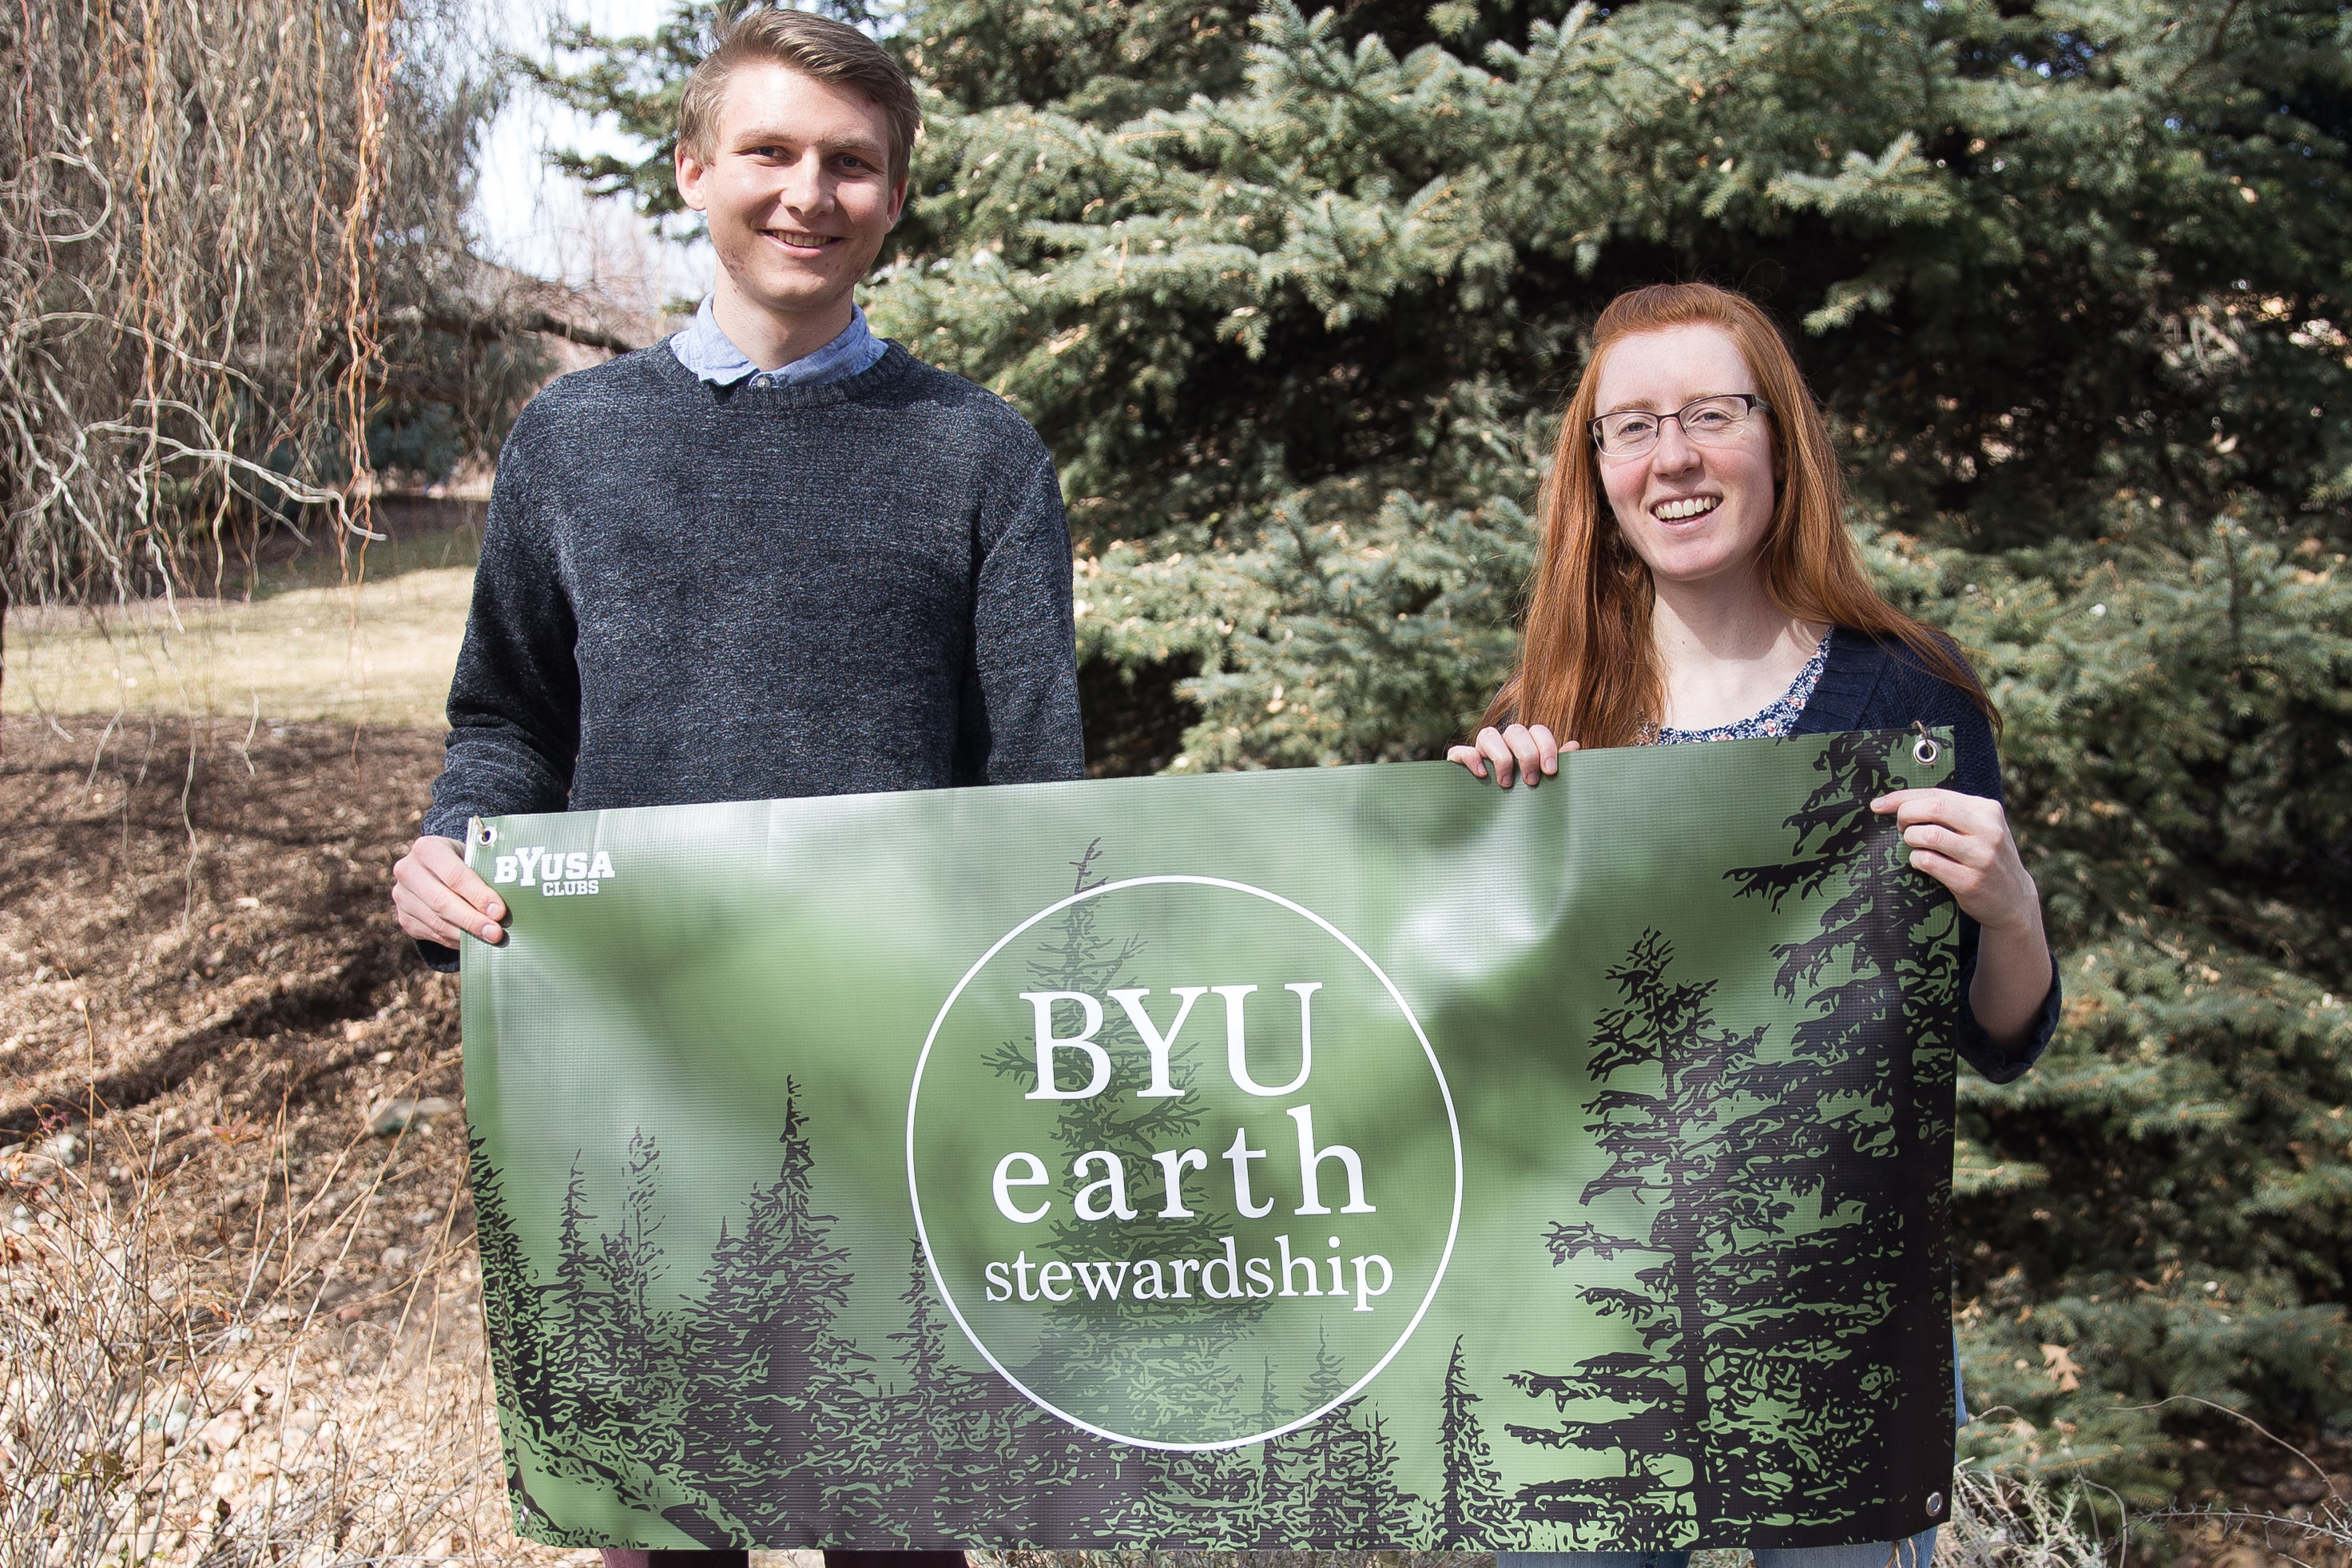 BYU students, lawmakers prioritize environmental care - The Daily